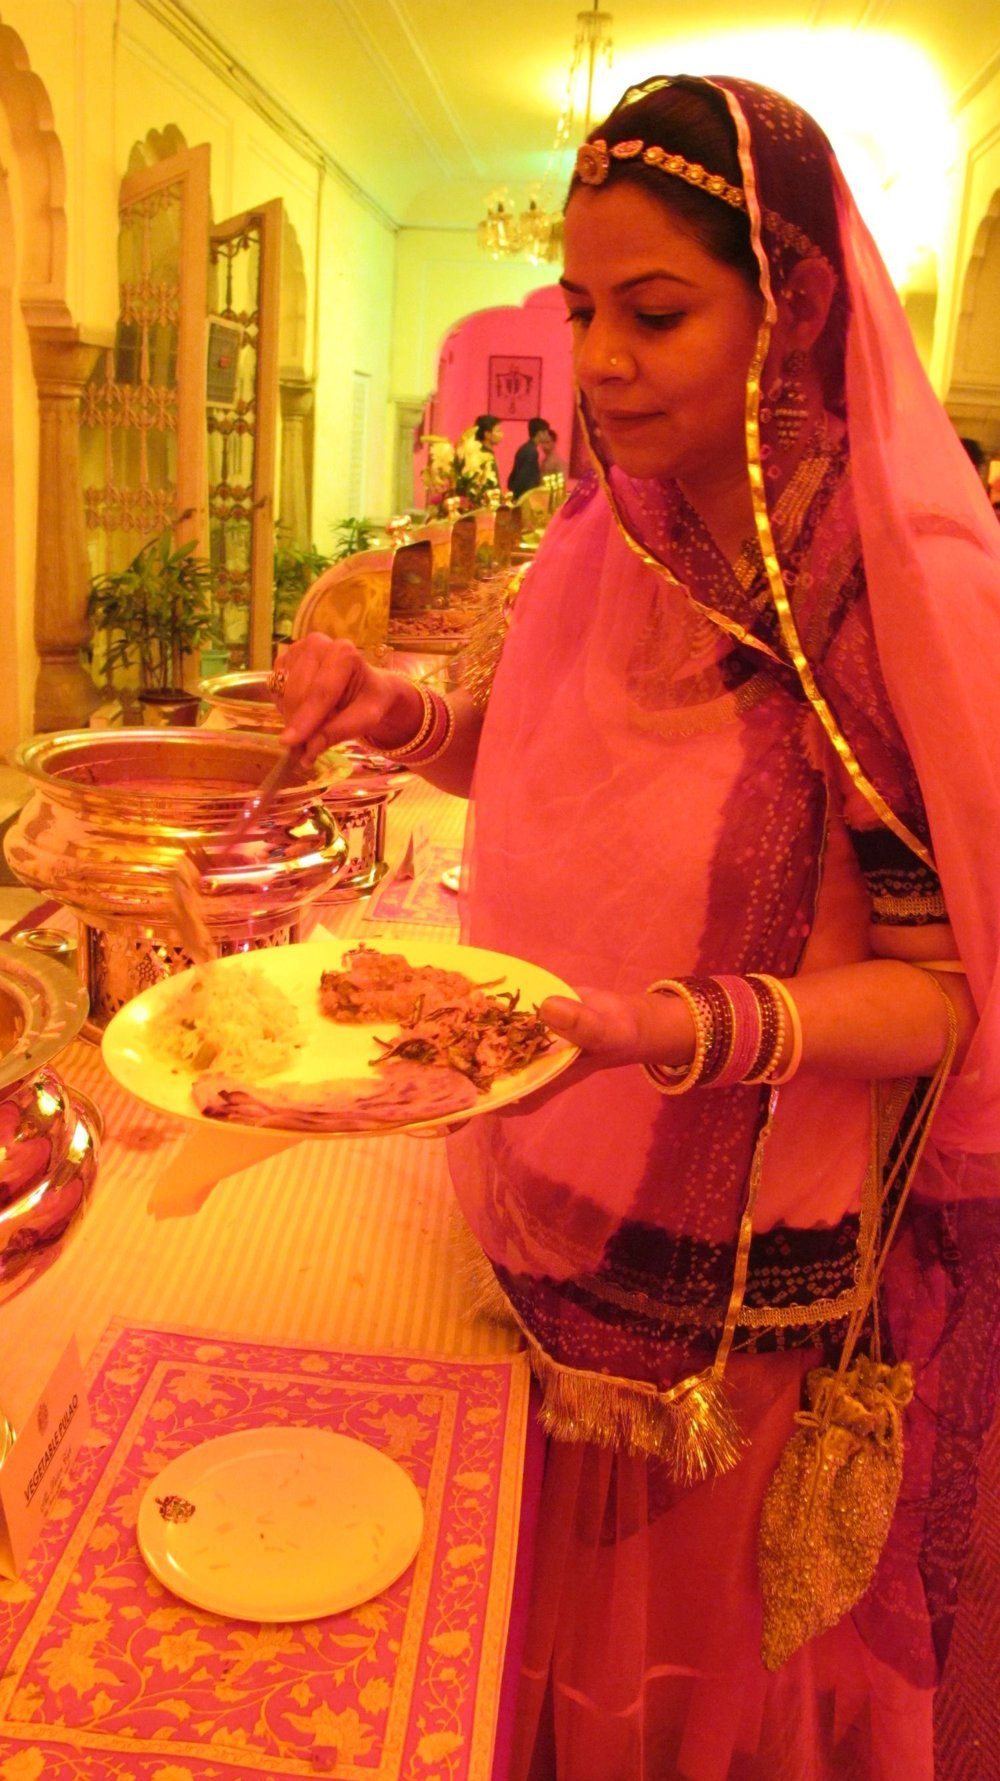 City palace of Jaipur | Royal family | Private party | Time to Diner with silver dishes | ©sandrine cohen